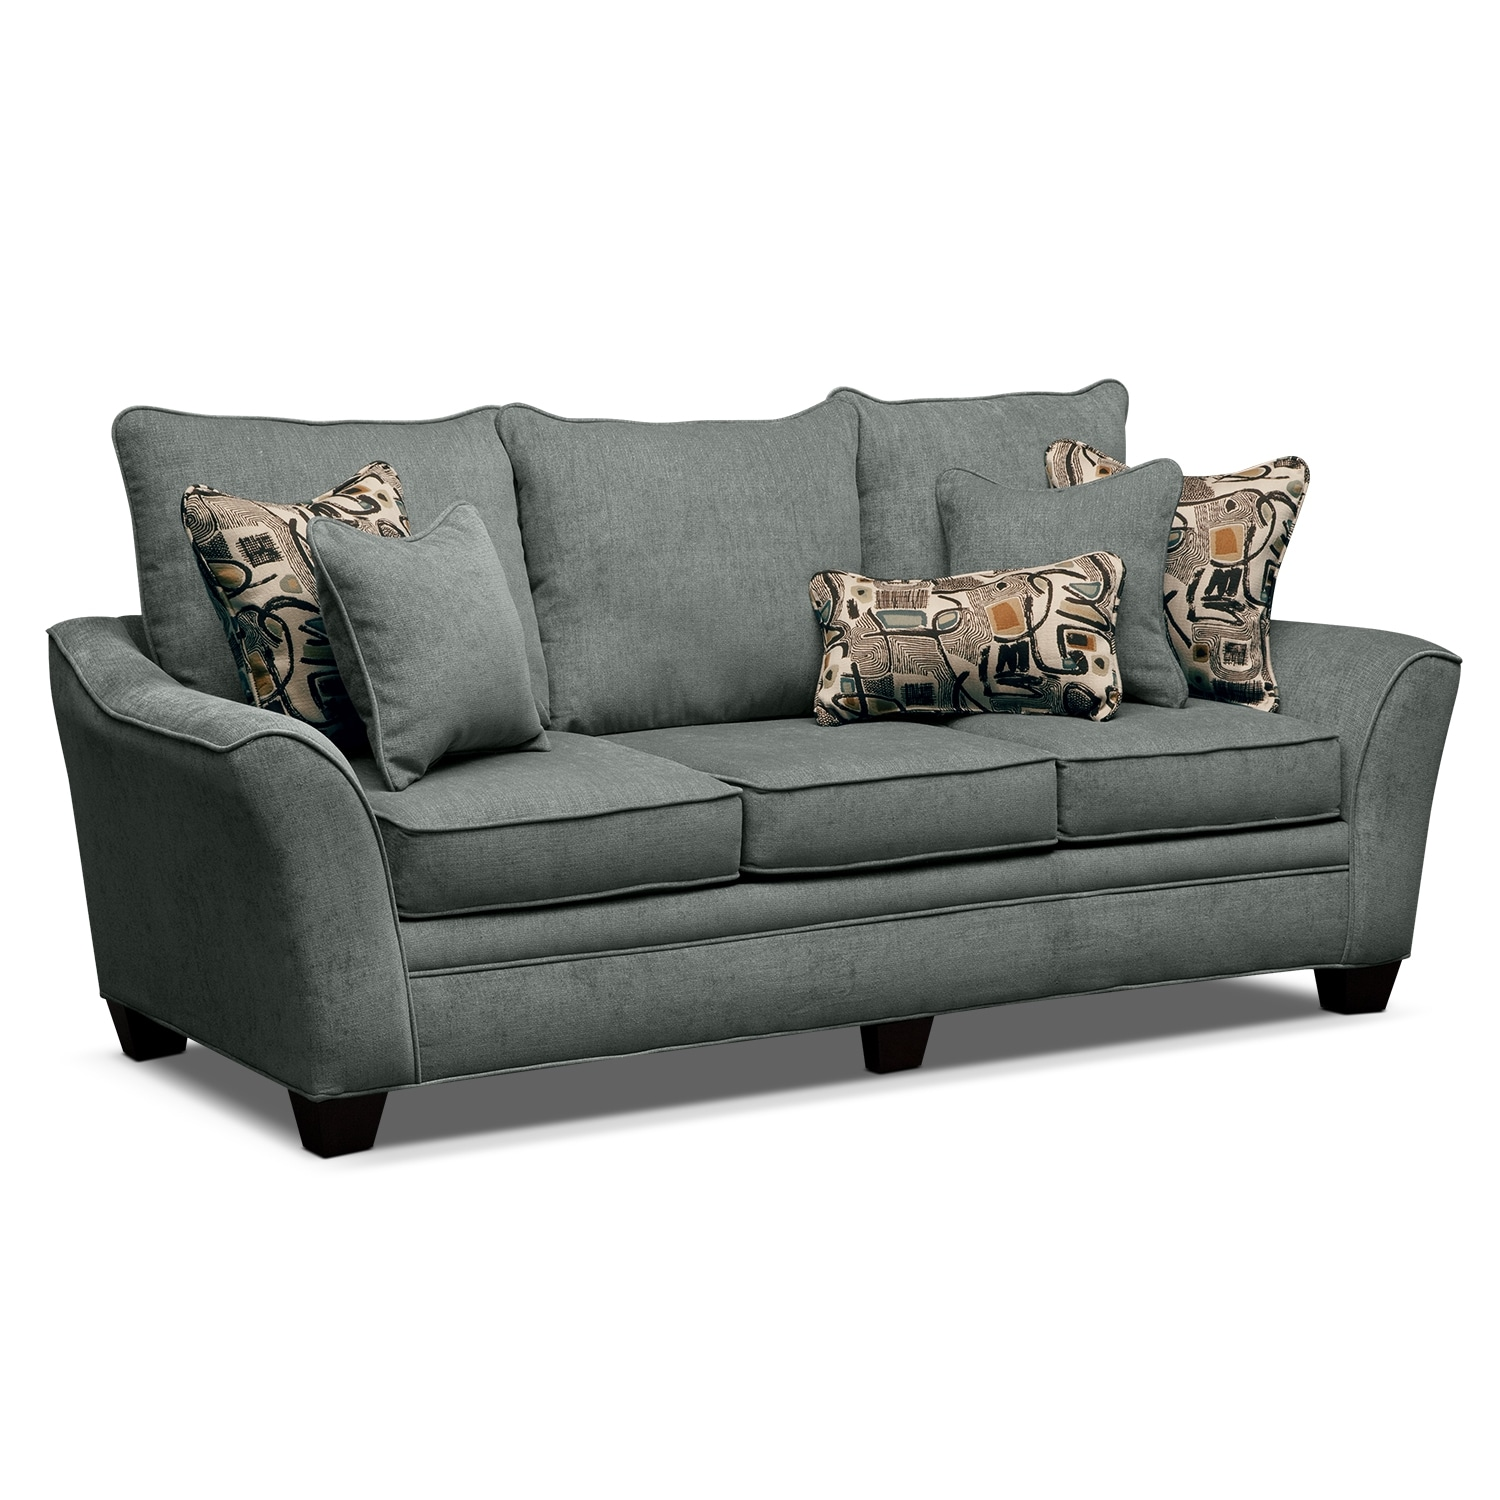 Living Room Furniture - Albion Blue Sofa